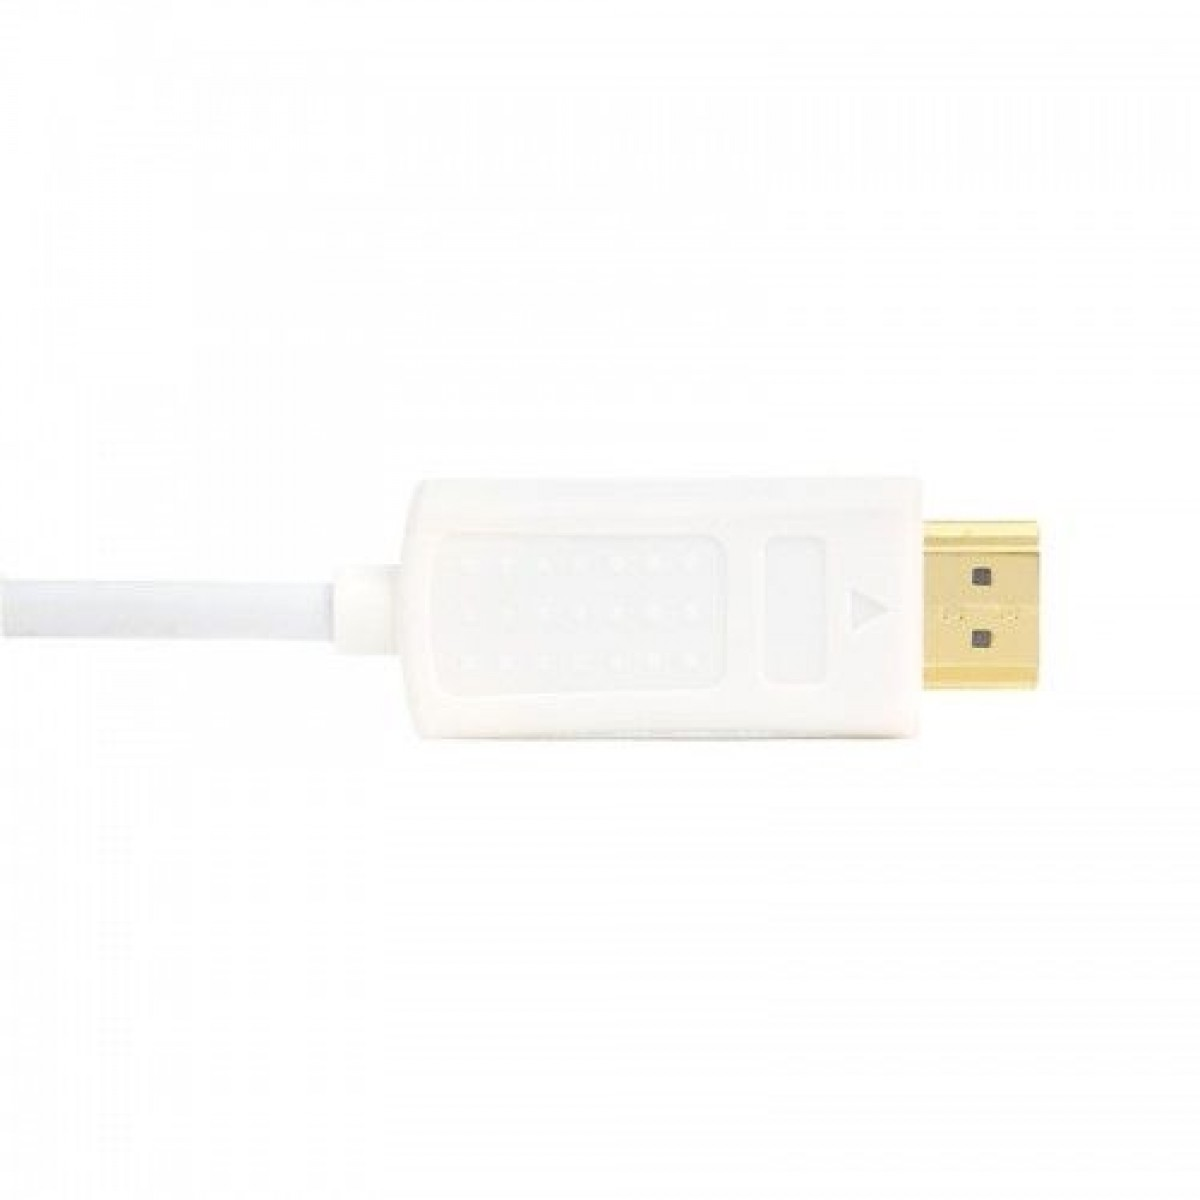 Apple 30 pin dock connector to hdmi for ipad 1 2 3 iphone for Apple projector for ipad